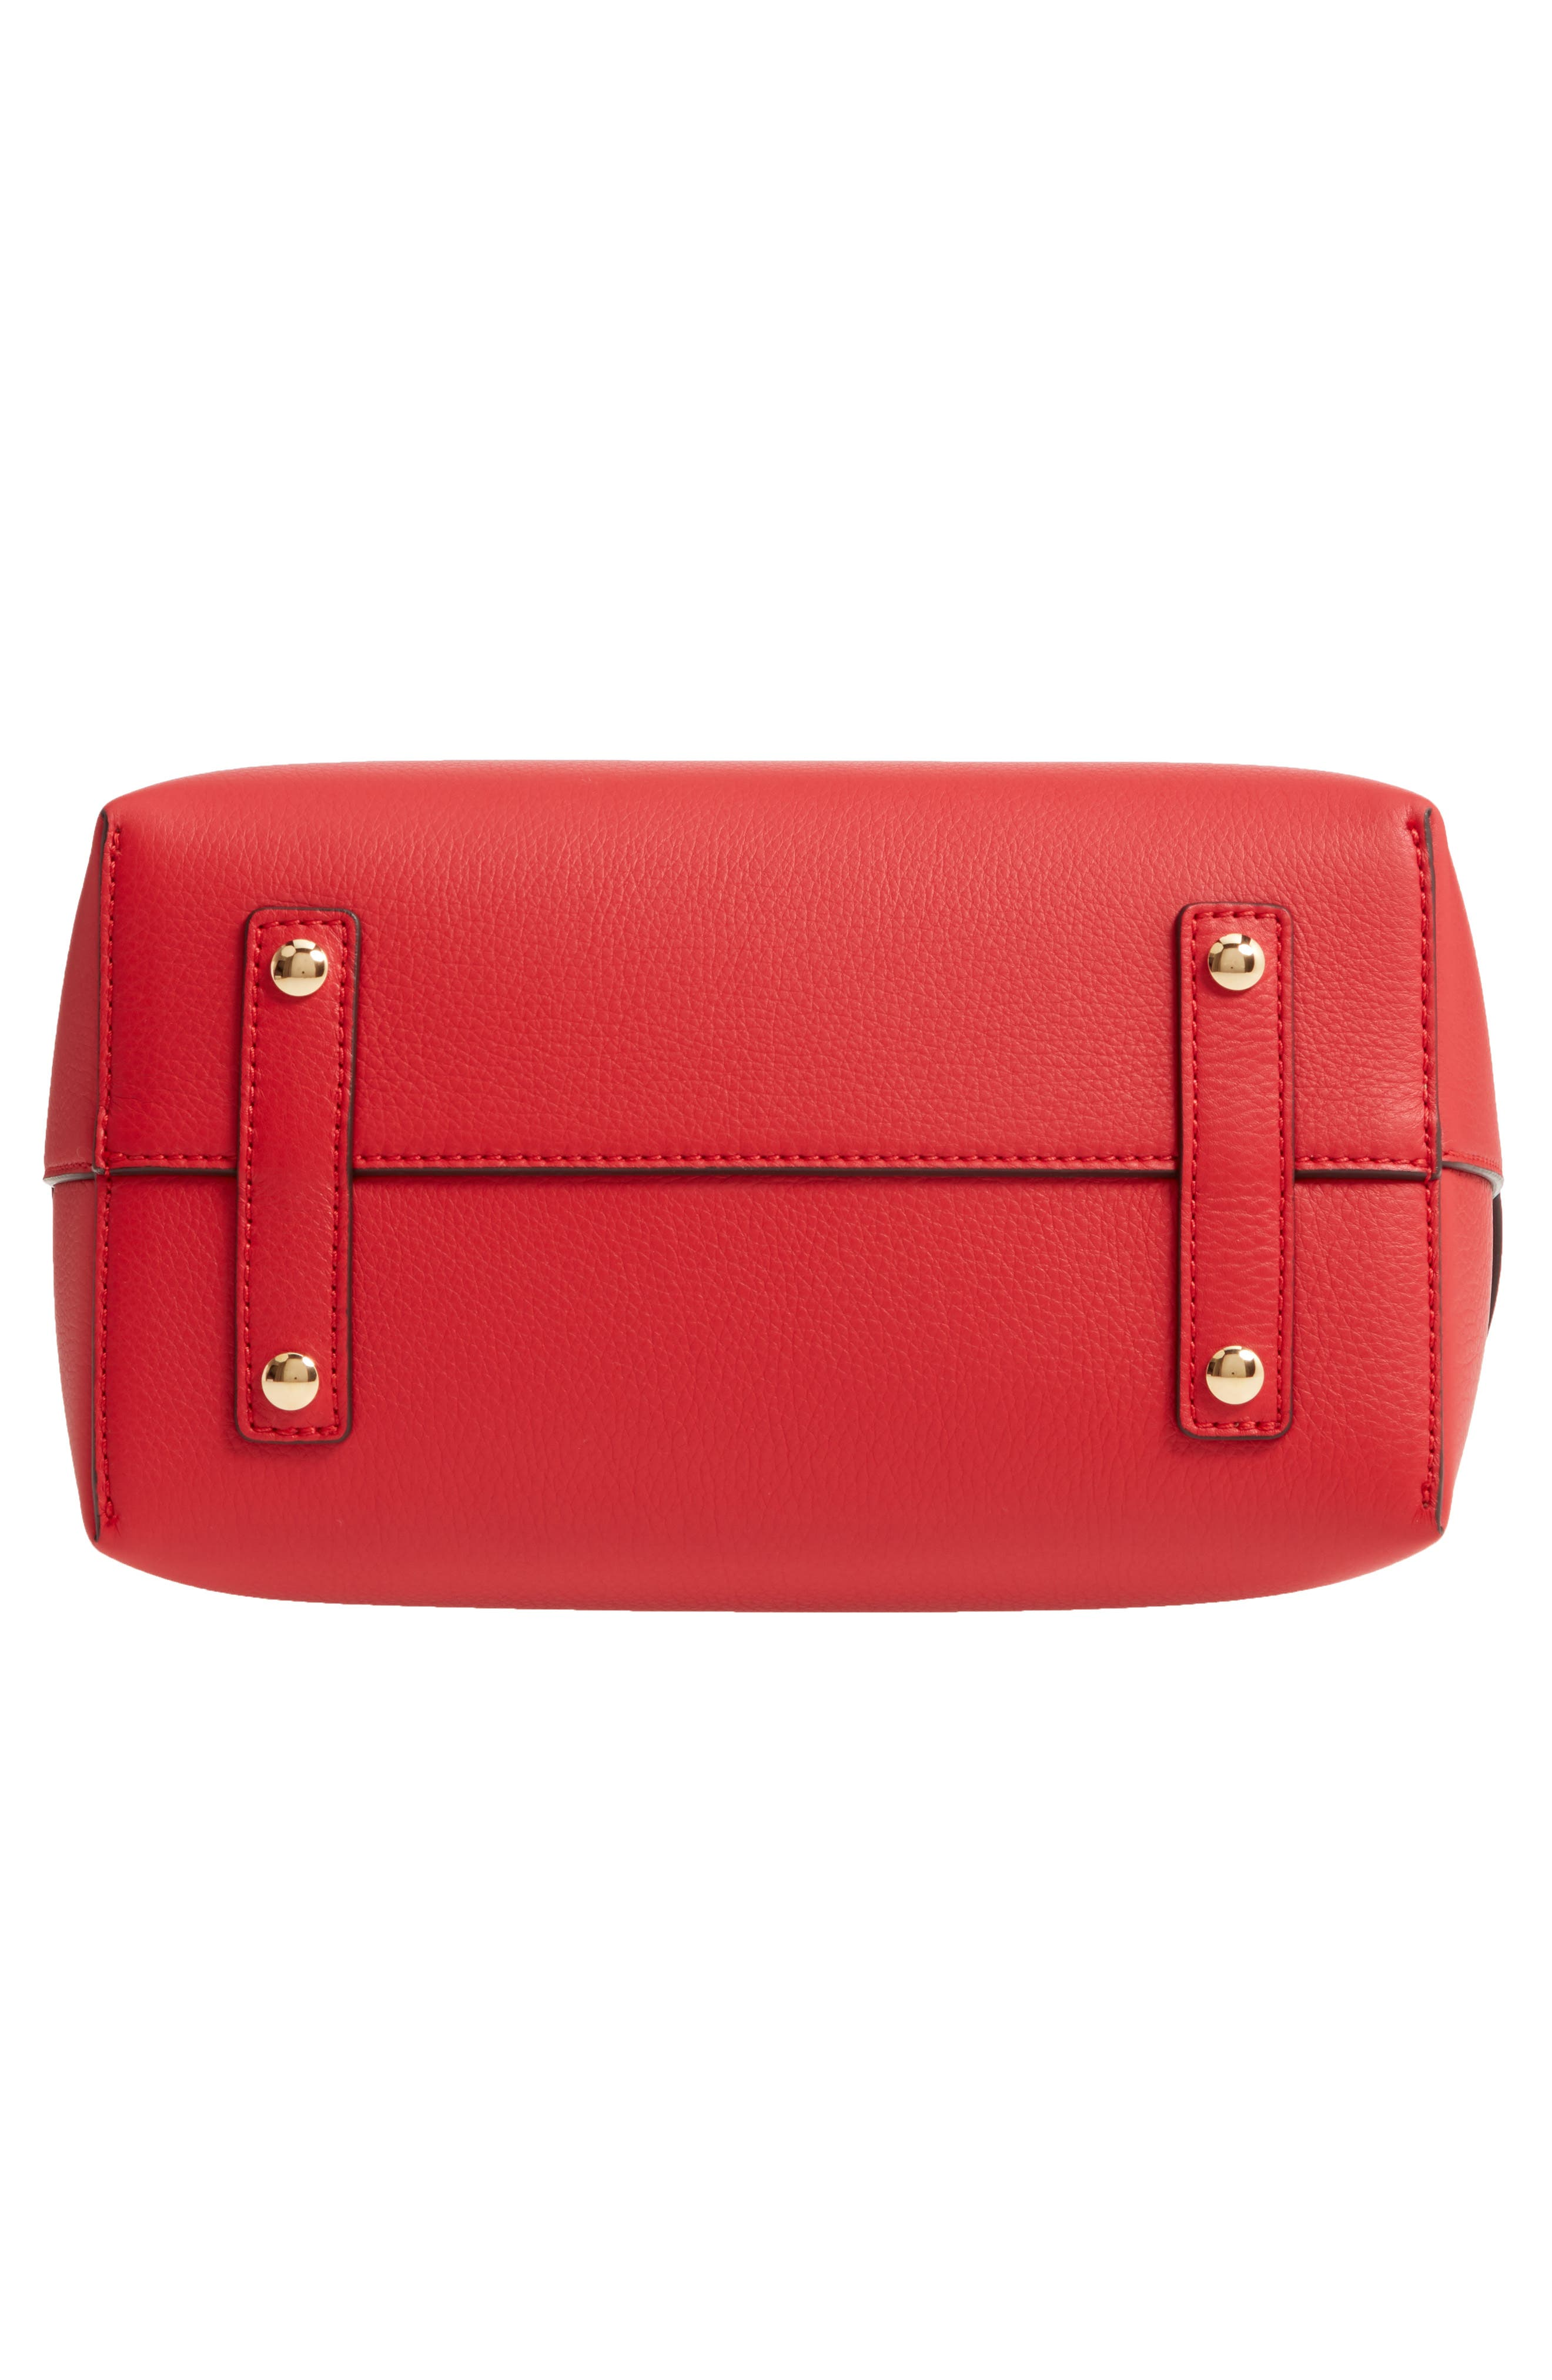 BURBERRY,                             Small Belt Leather Satchel,                             Alternate thumbnail 7, color,                             BRIGHT MILITARY RED